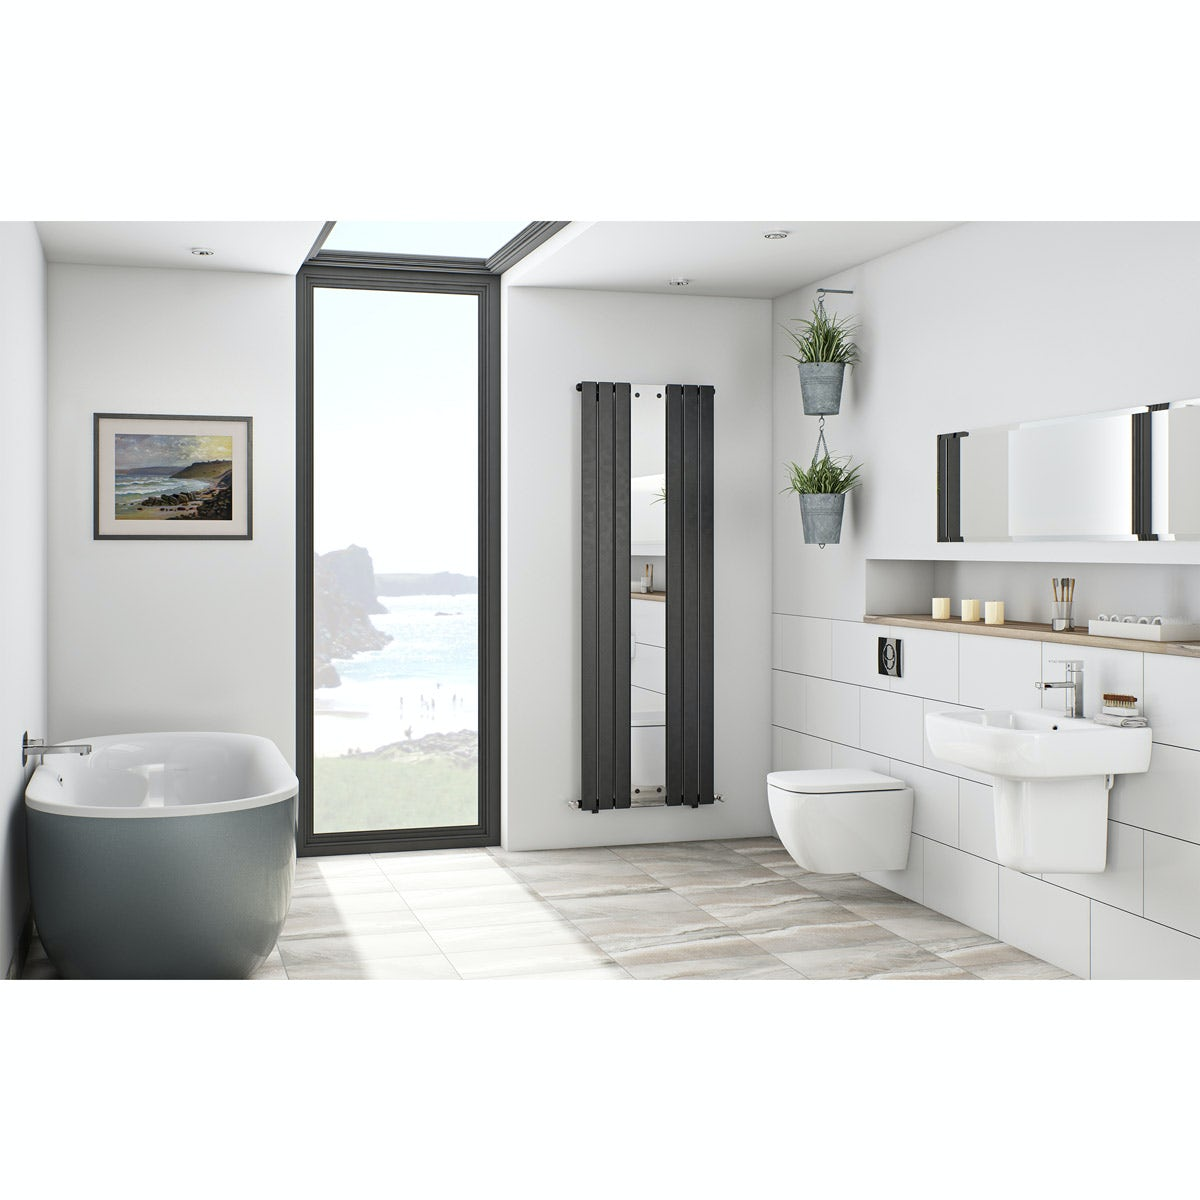 Mode Ellis storm bathroom suite with freestanding bath